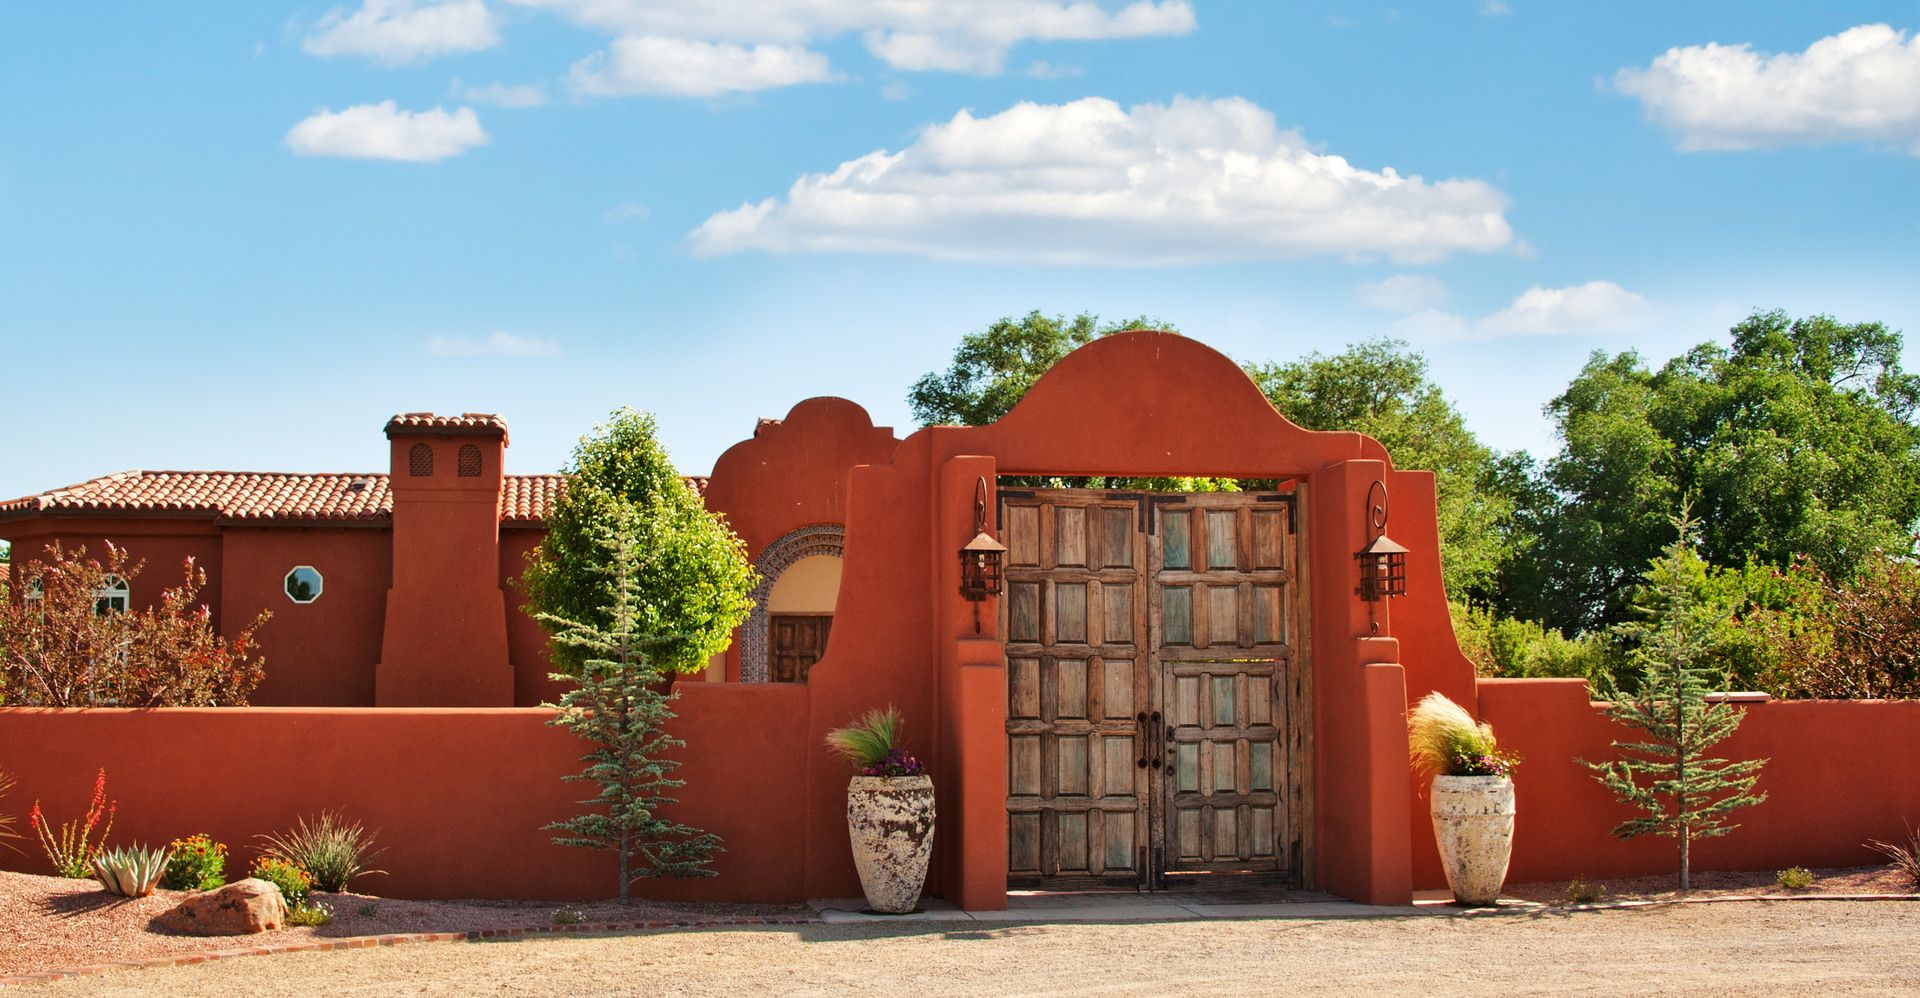 image detail for luxury home in corrales new mexico by ivana